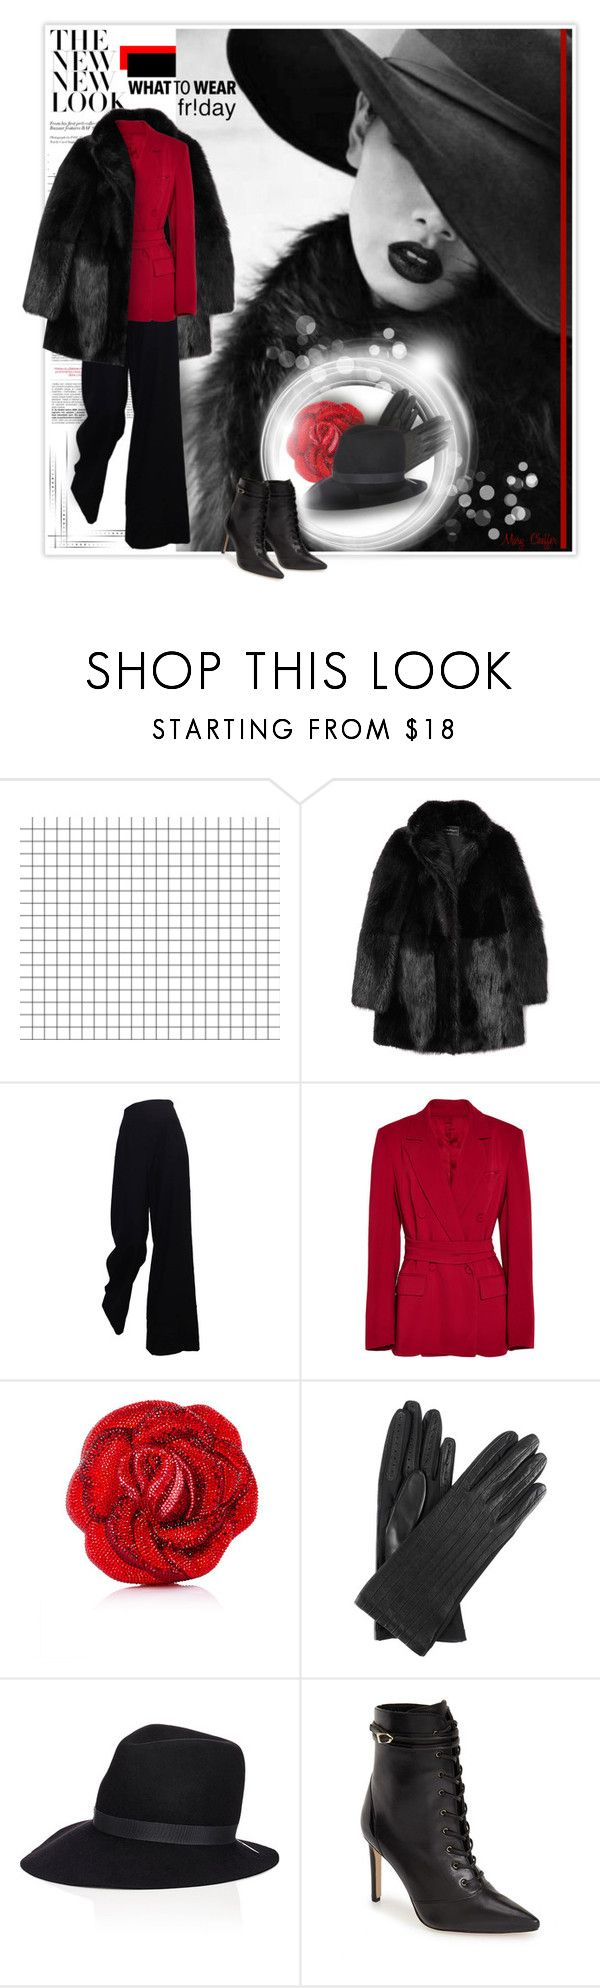 """Dressed to spend! Black Friday Shopping"" by mcheffer ❤ liked on Polyvore featuring Maybelline, Salvatore Ferragamo, The Row, Barbara Casasola, Judith Leiber, Dents, House of Lafayette, Sam Edelman and shoptilyoudrop"